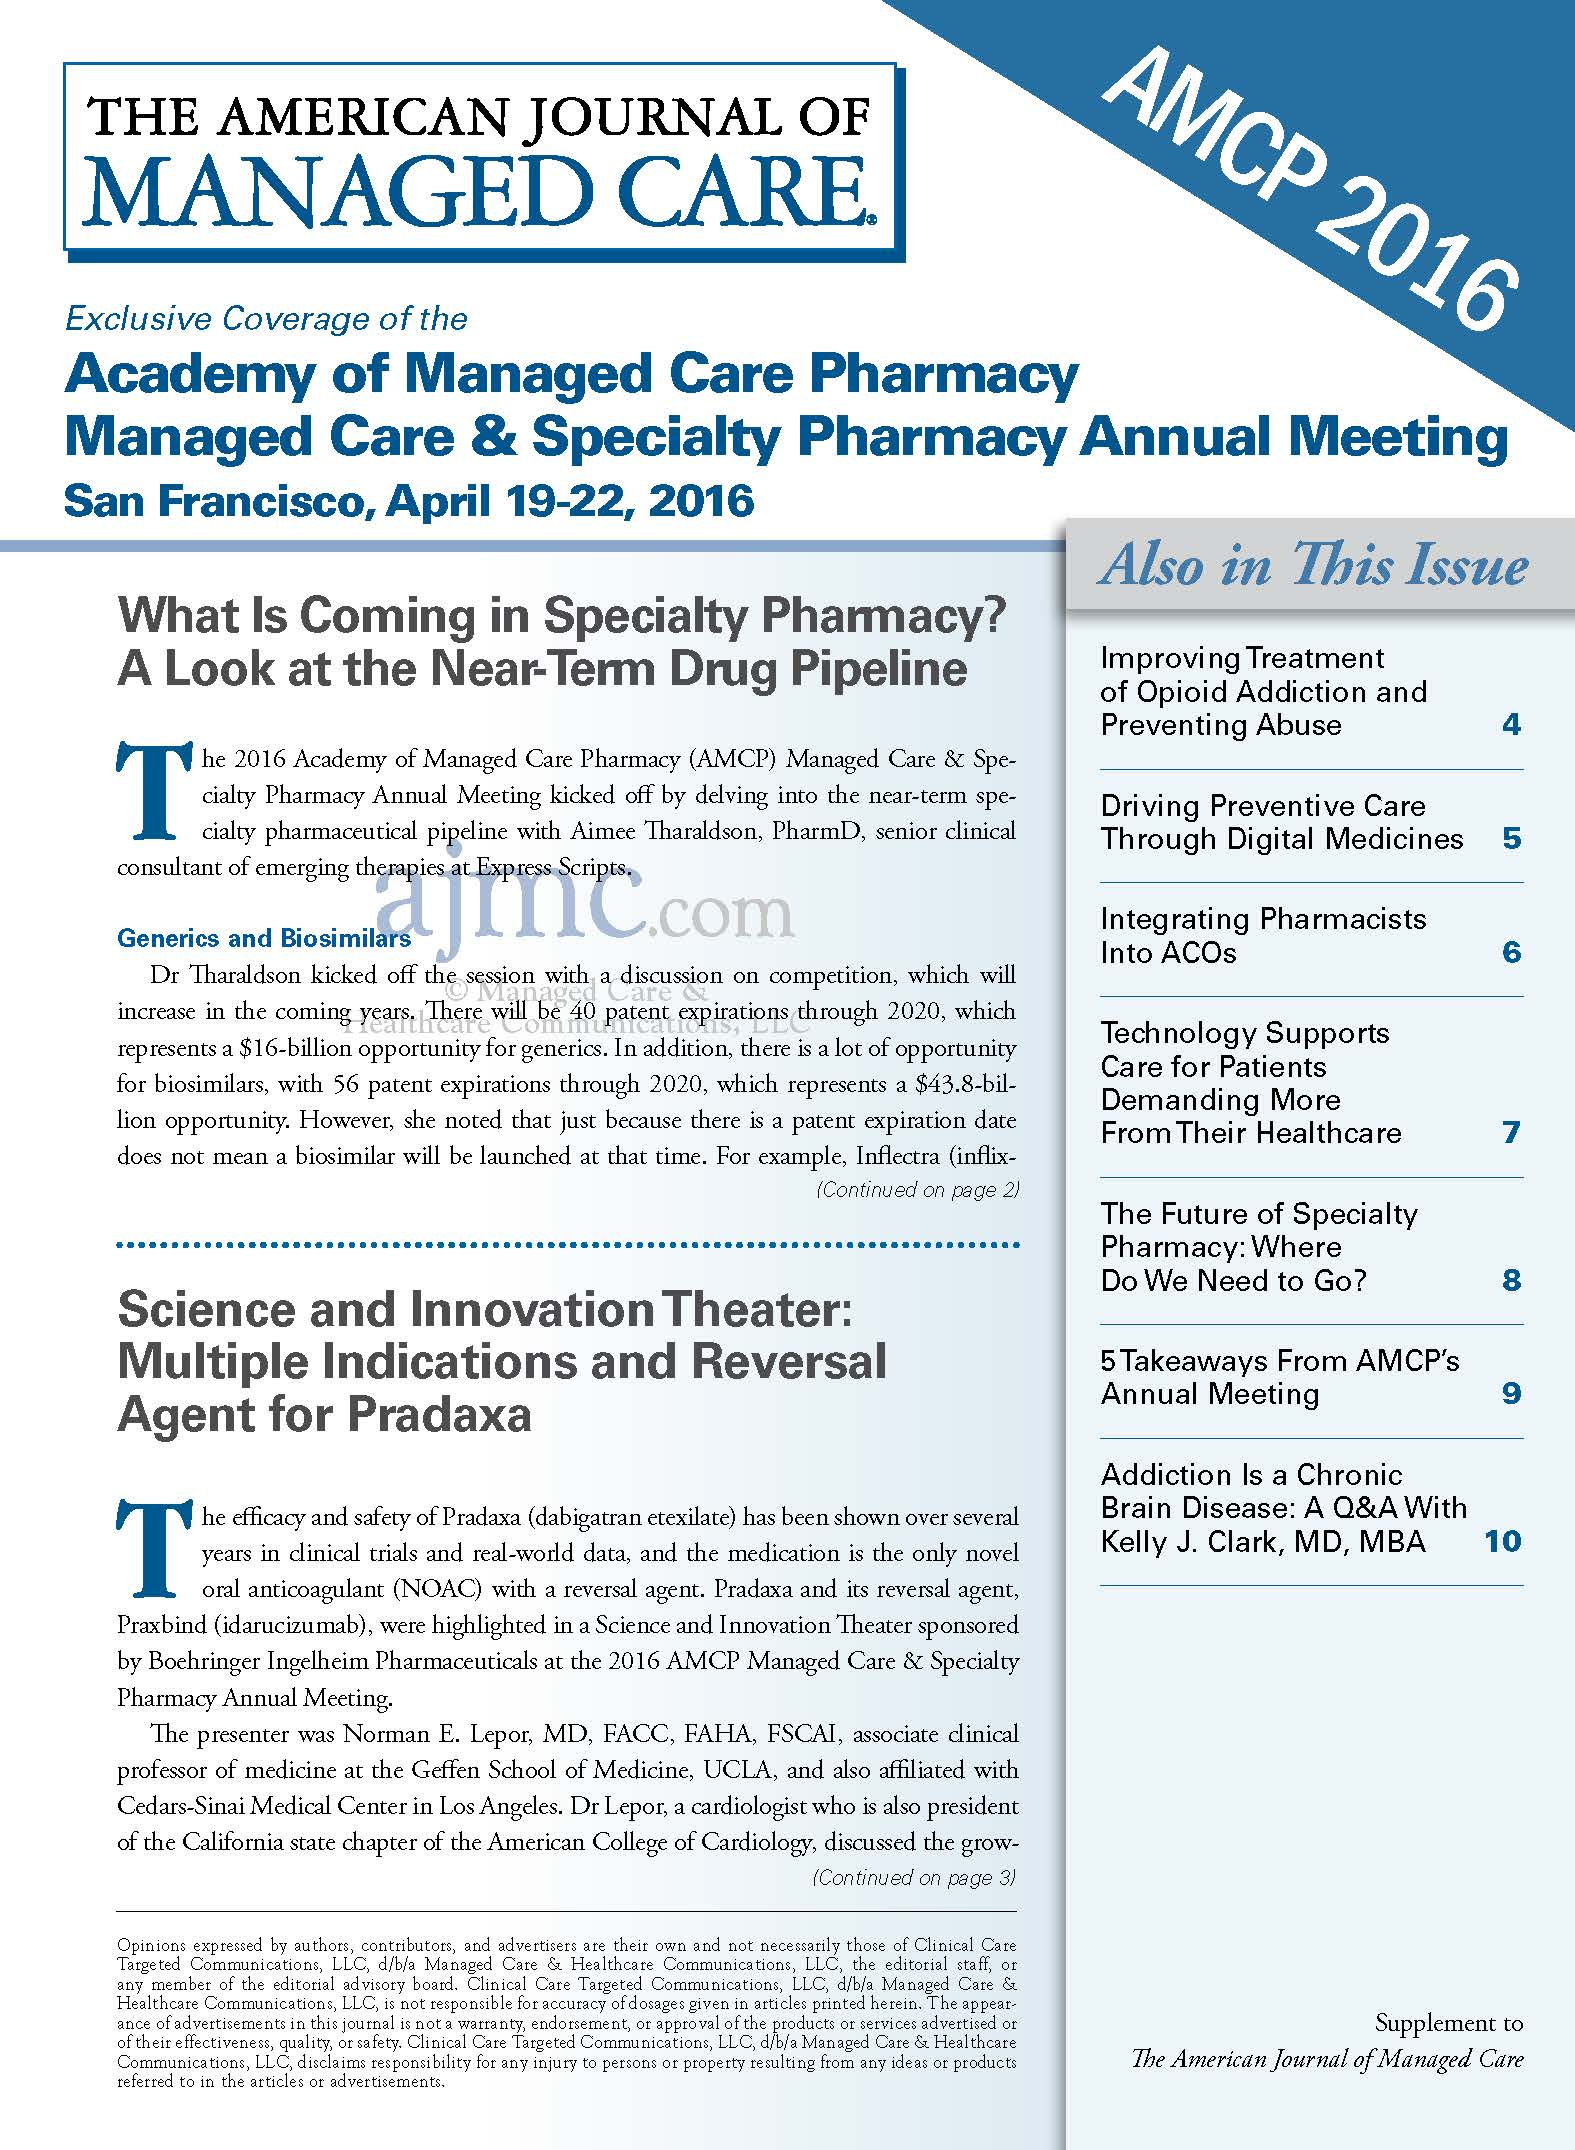 Exclusive Coverage of the Academy of Managed Care Pharmacy  Managed Care & Specialty Pharmacy Annual Meeting San Francisco, April 19-22, 2016